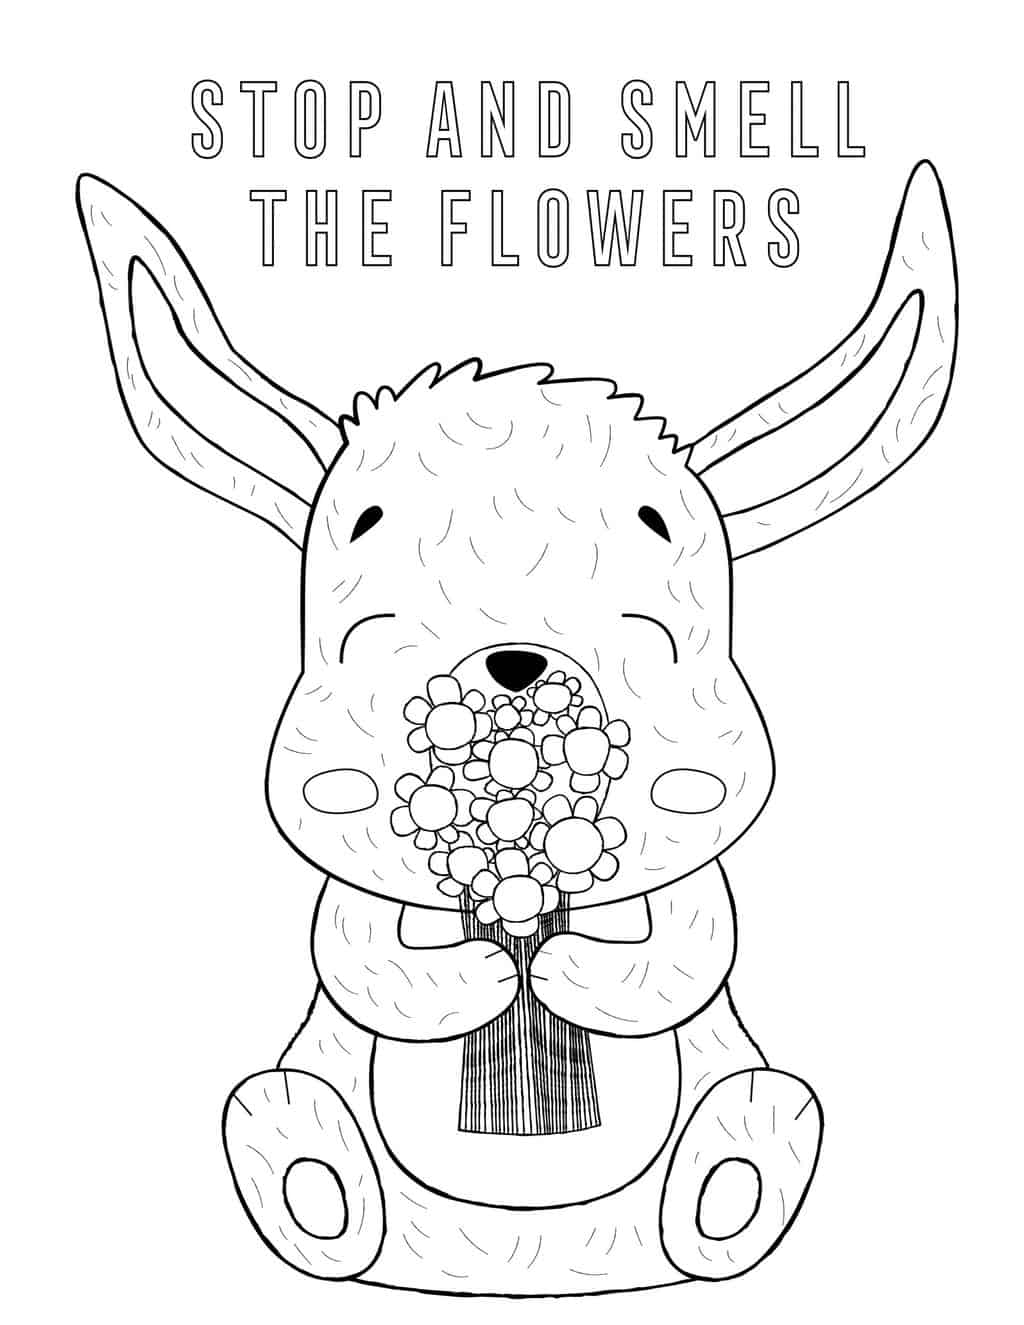 a coloring page of a bunny smelling a bouquet of flowers